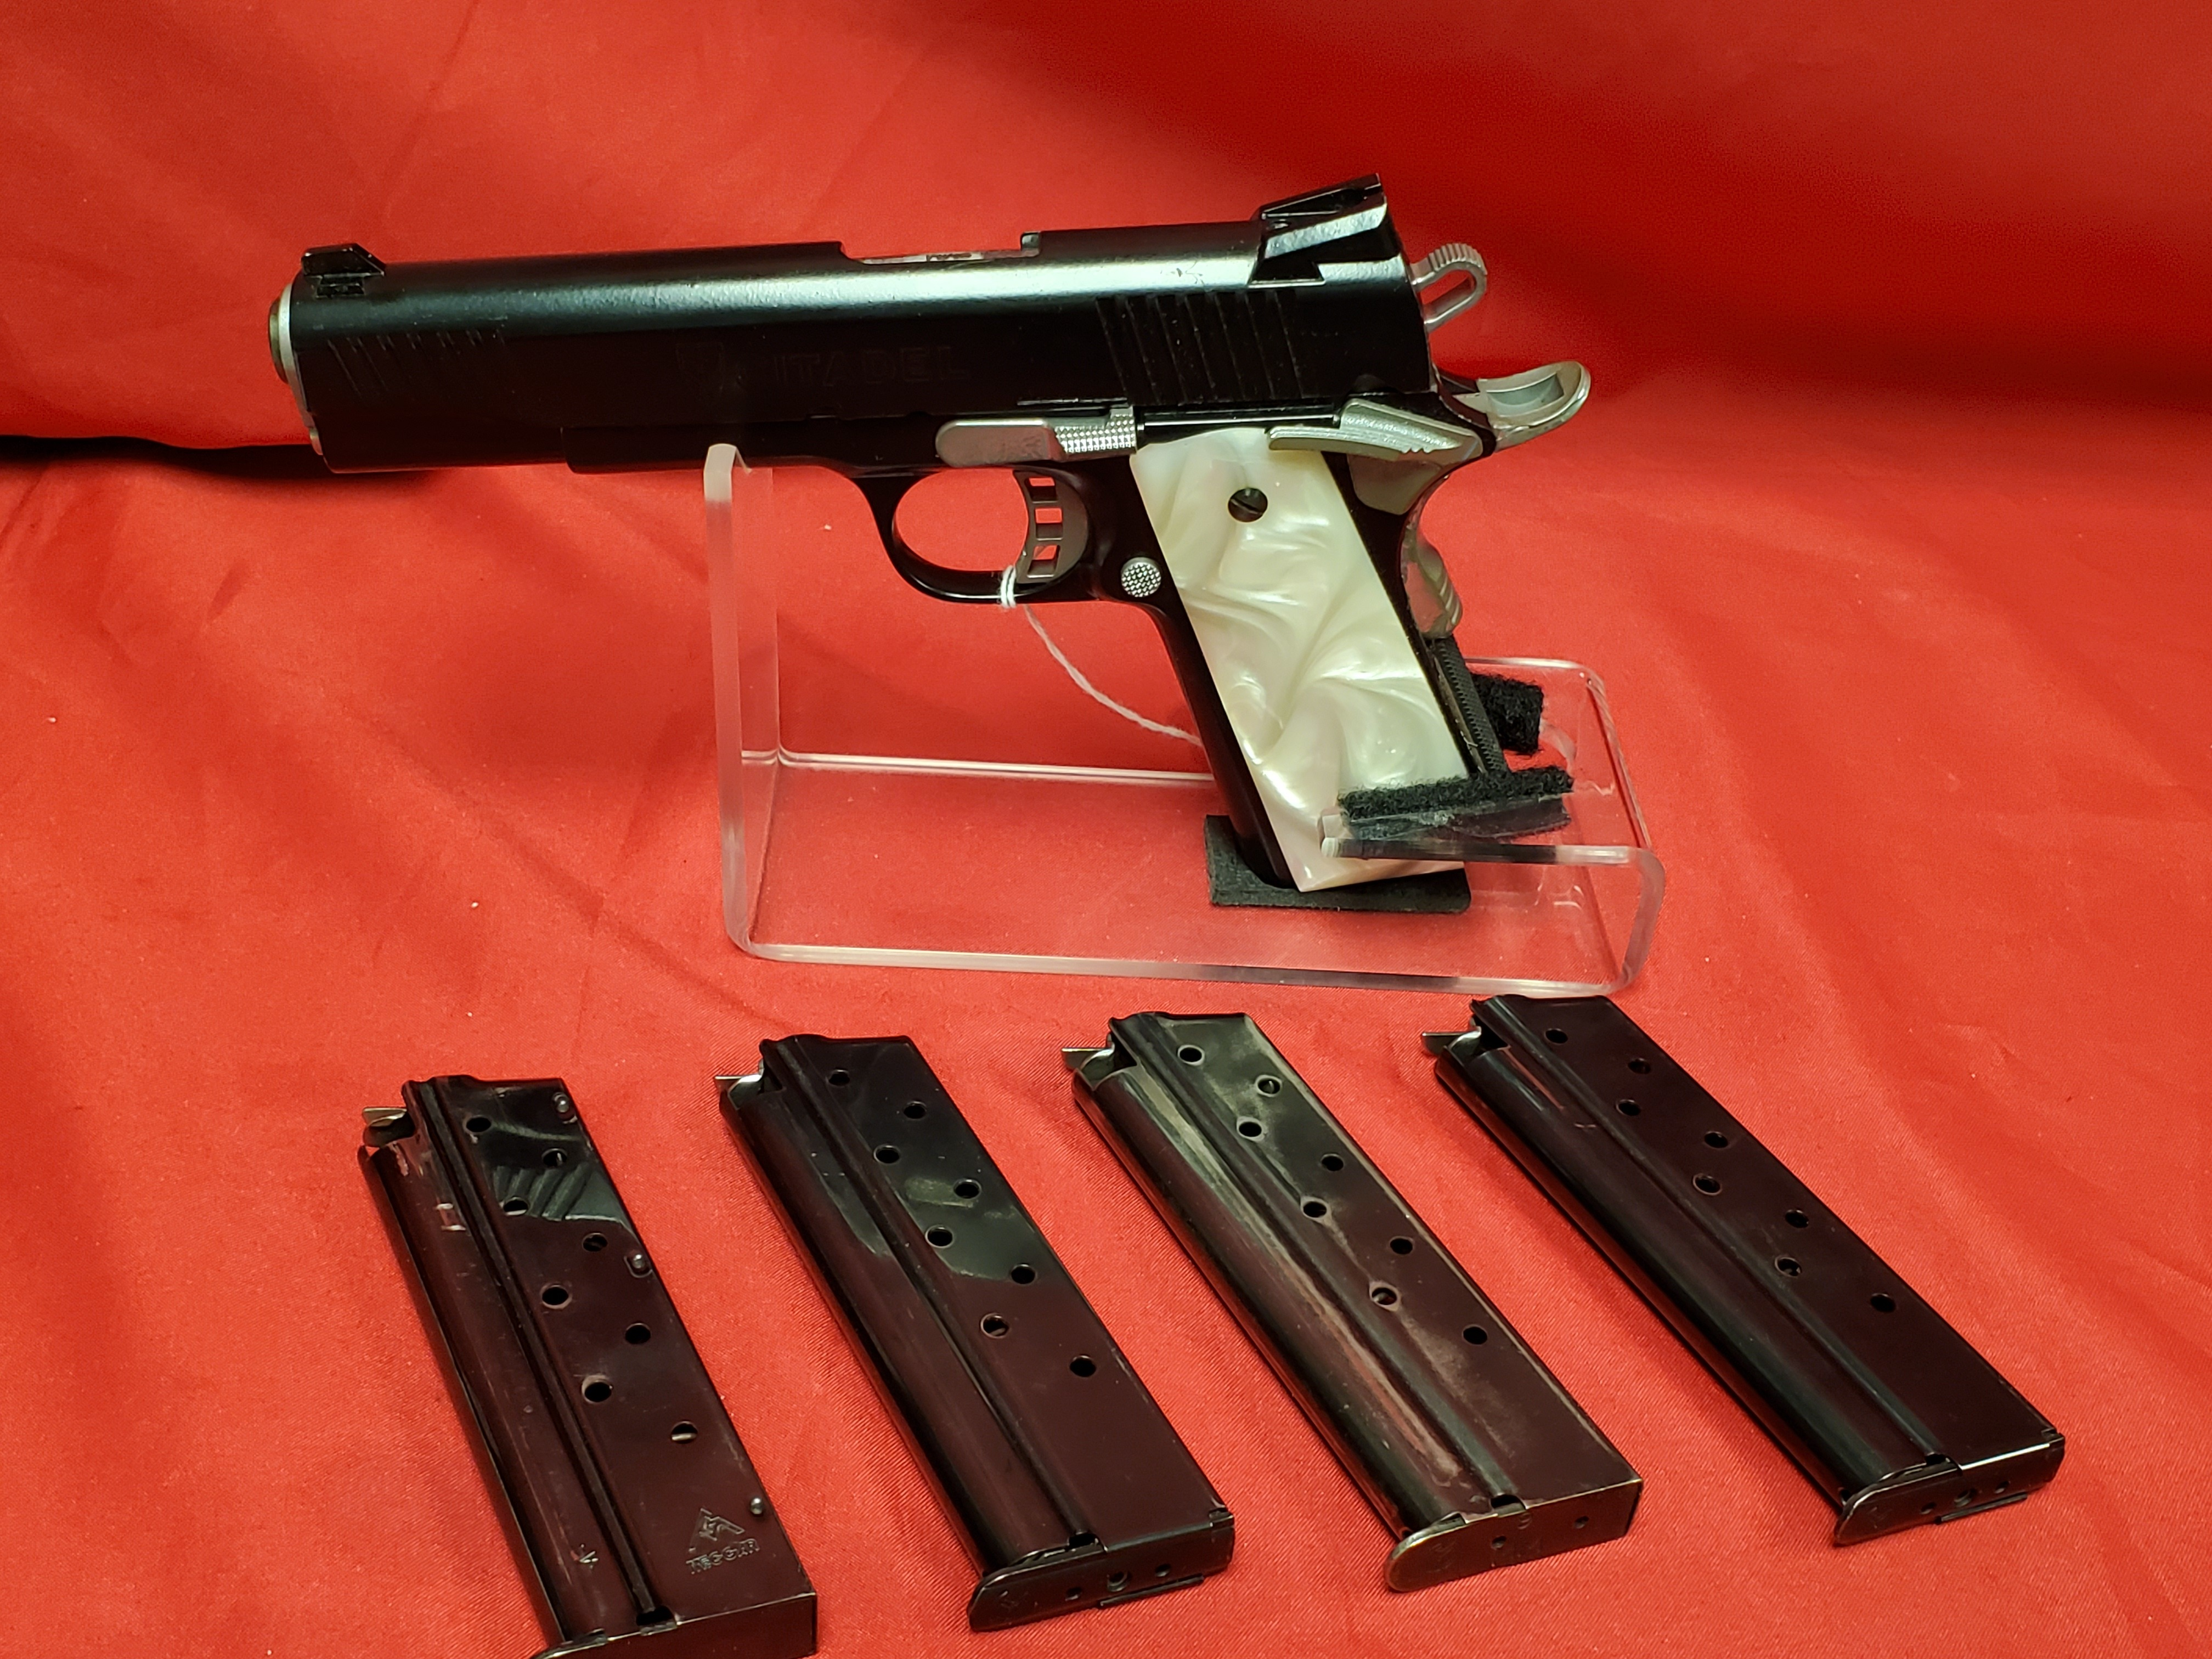 CITADEL M1911 with PEARL GRIPS in 9mm - Includes 4 magazines